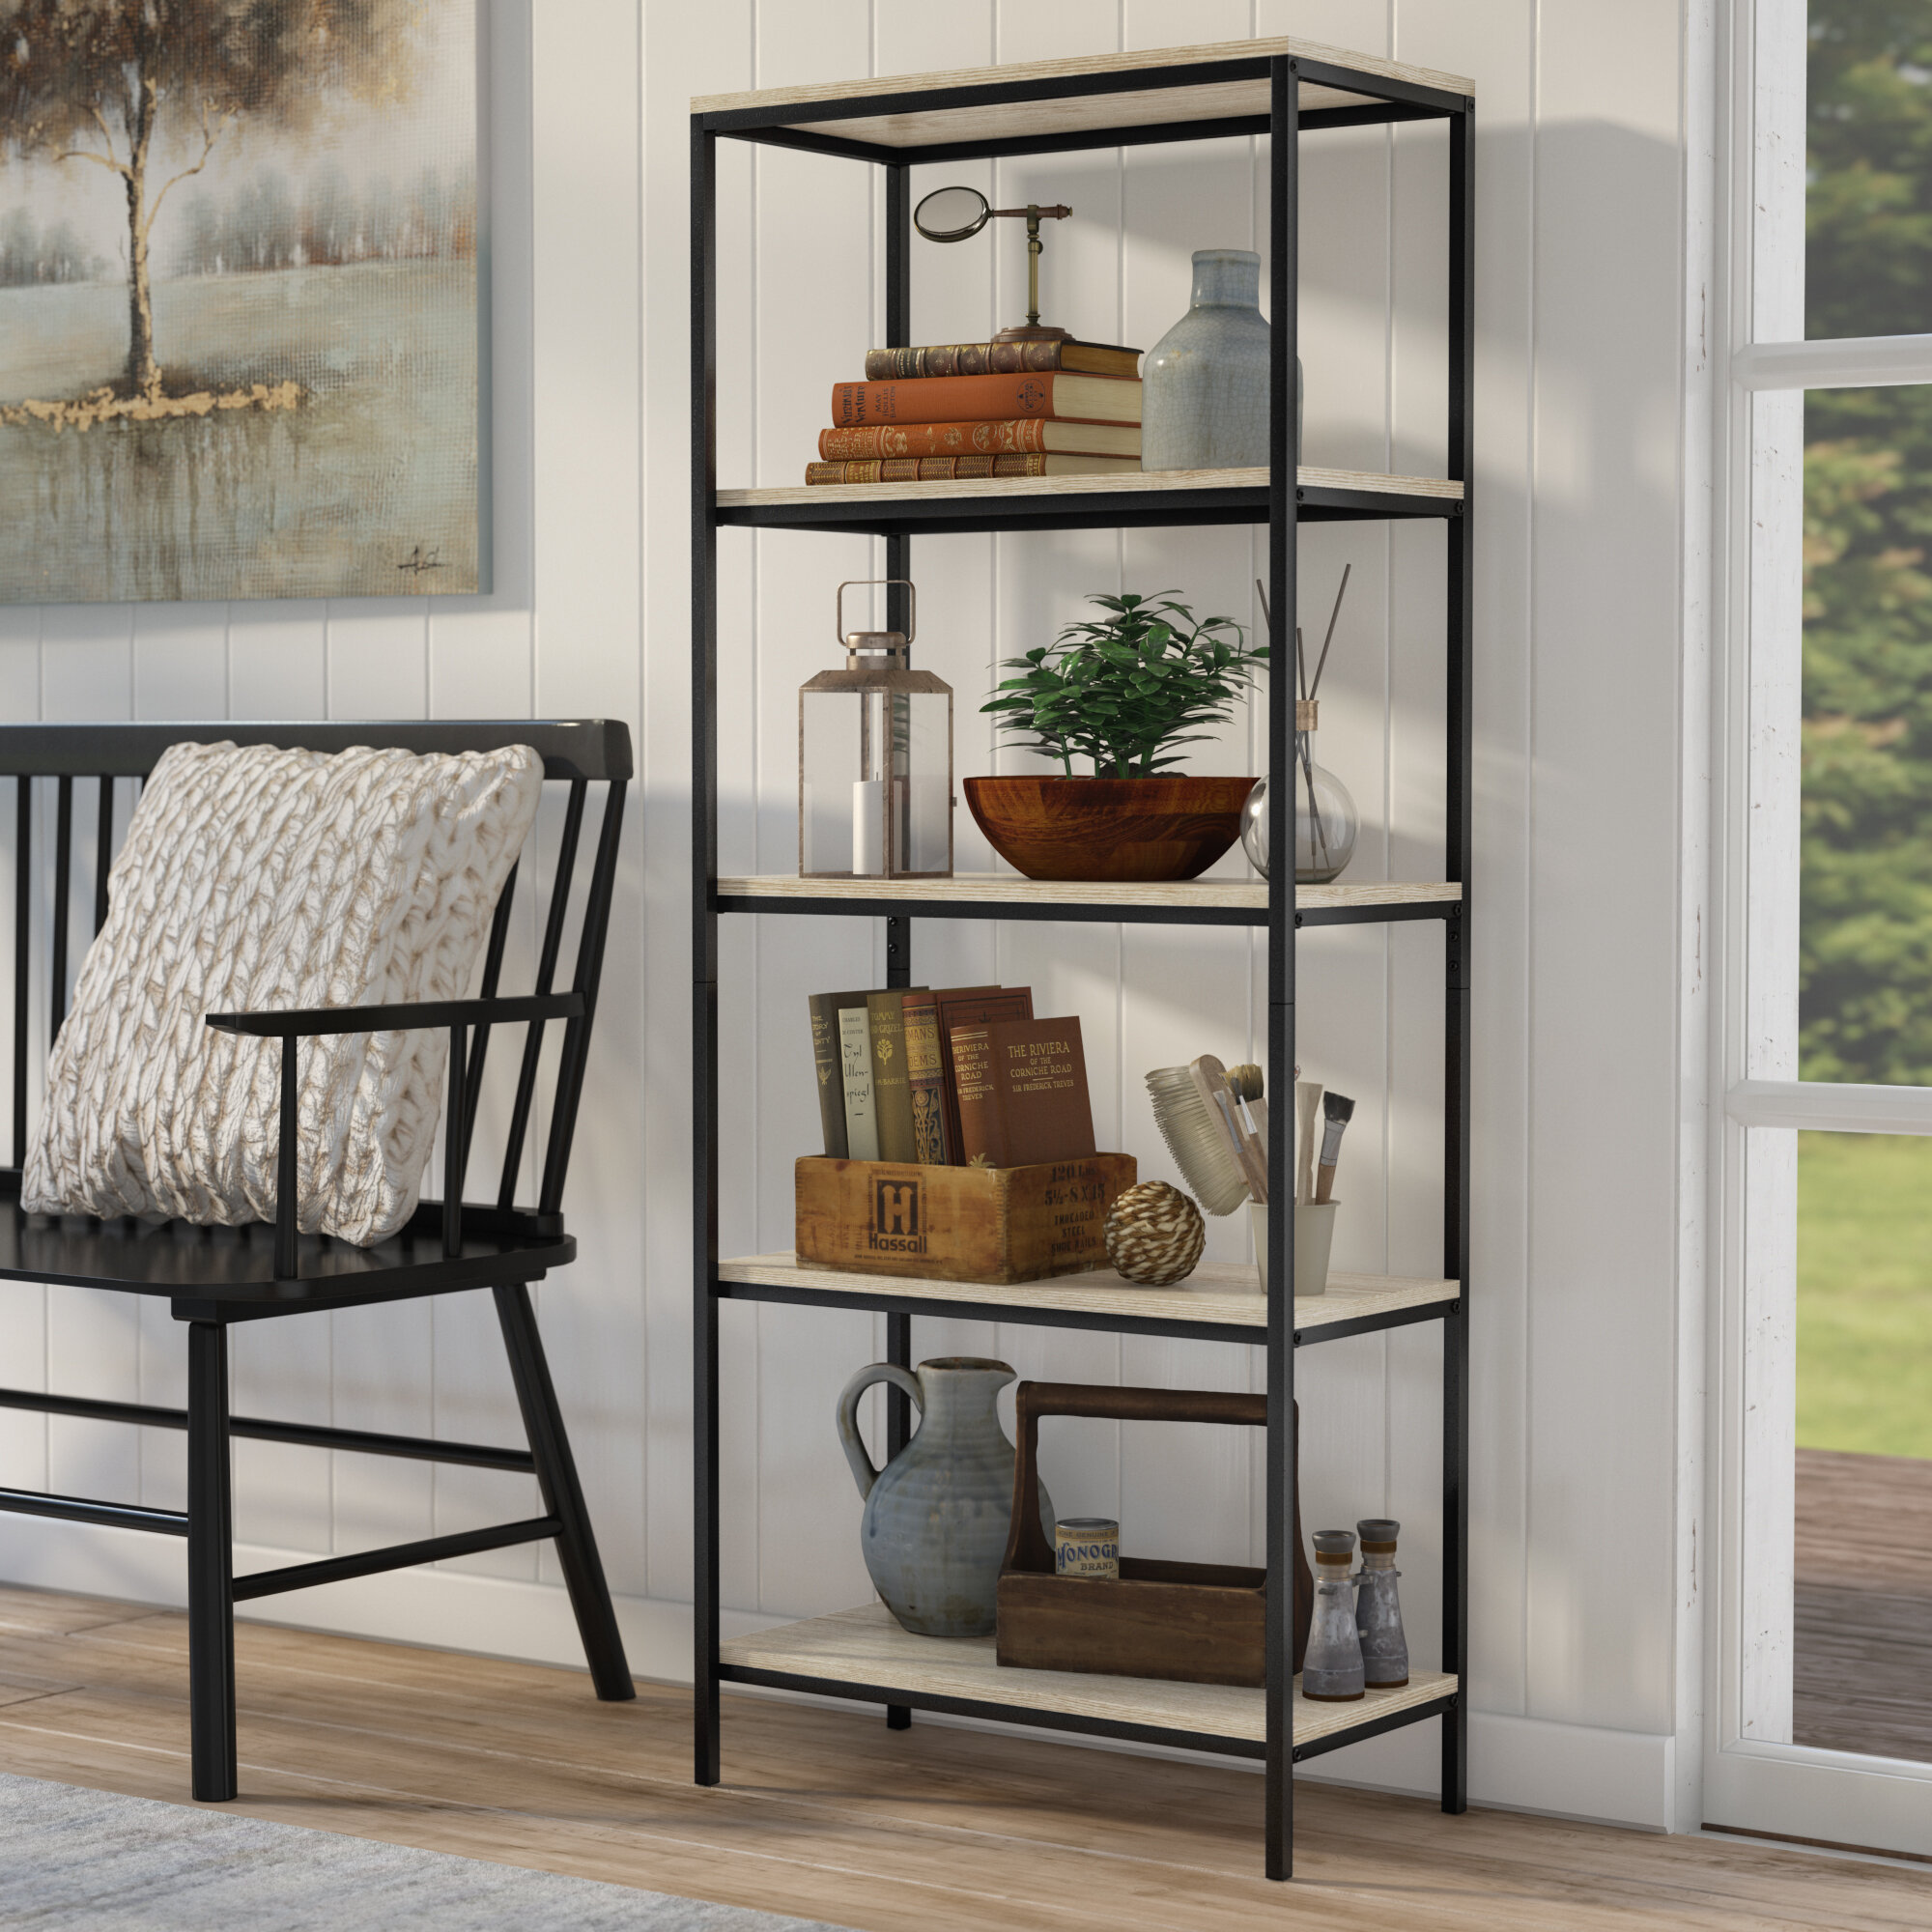 Laurel foundry modern farmhouse ermont etagere bookcase reviews laurel foundry modern farmhouse ermont etagere bookcase reviews wayfair solutioingenieria